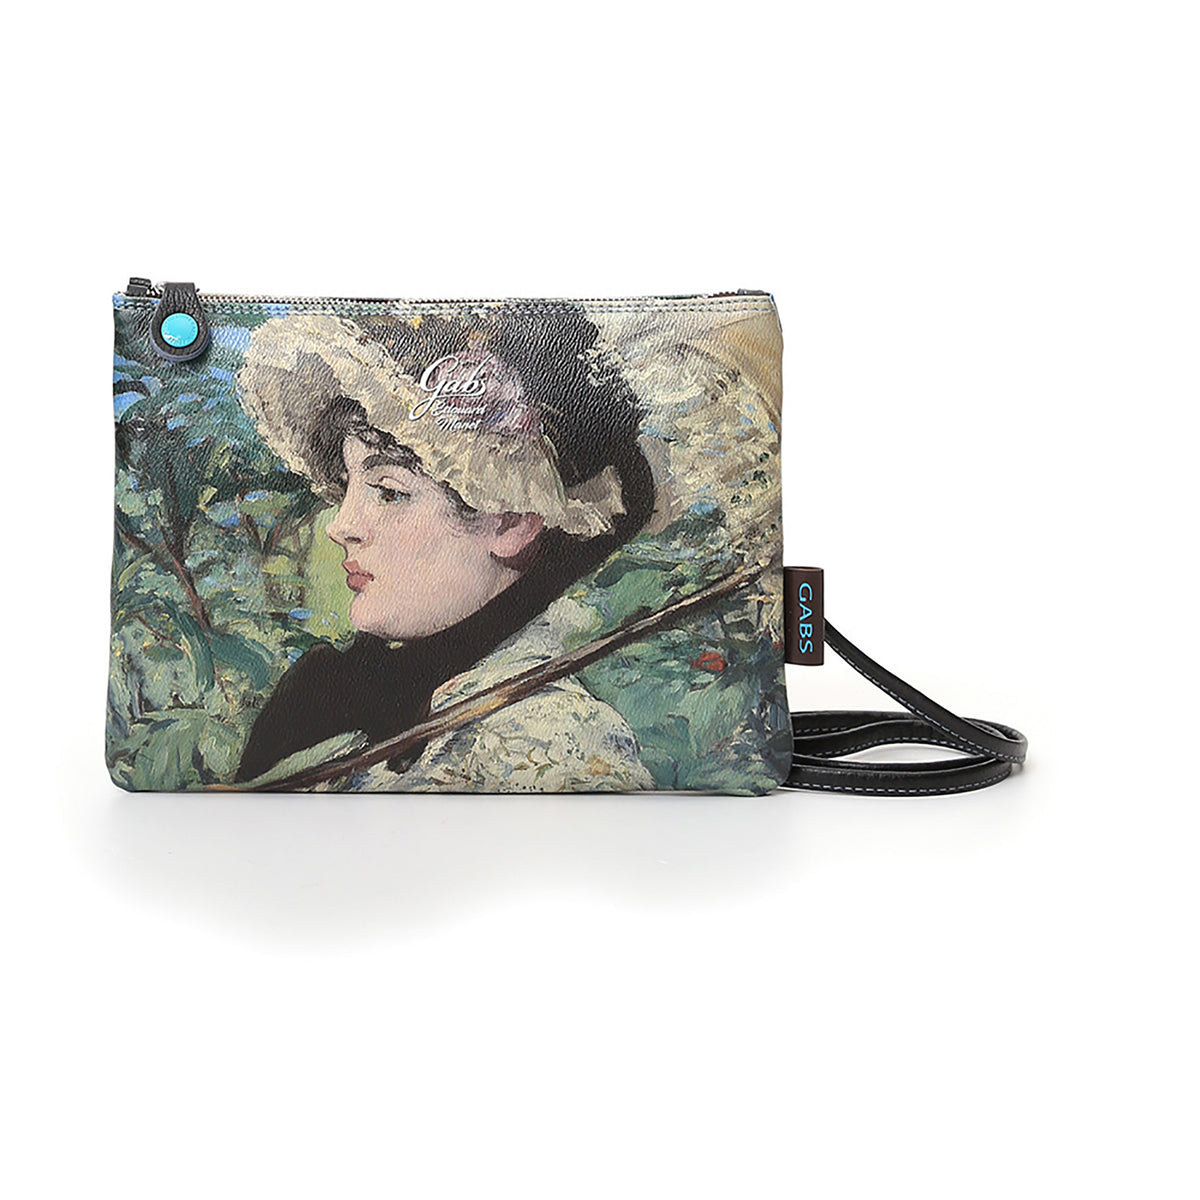 Clutch Bag featuring Manet's Jeanne, by Gabs, Italy-Front View | Getty Store